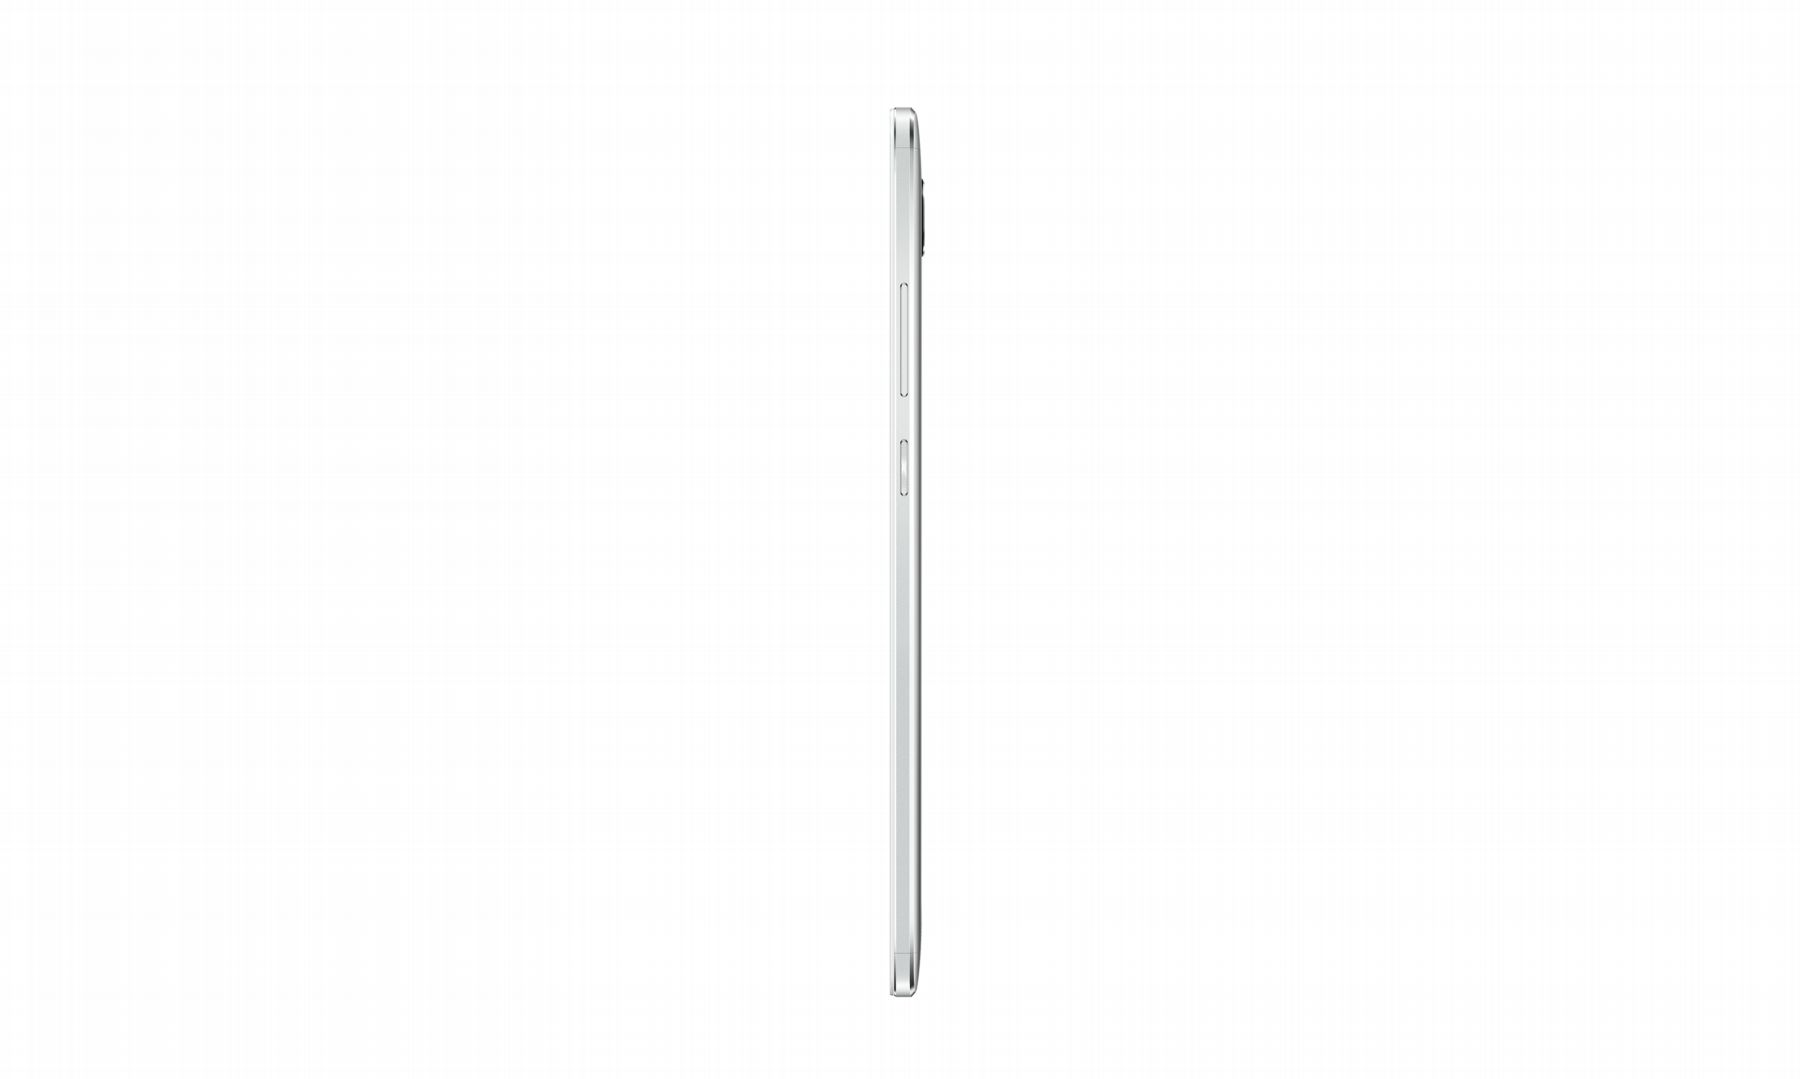 Huawei Ascend Mate7_Single_Gray Side Face_Hi res